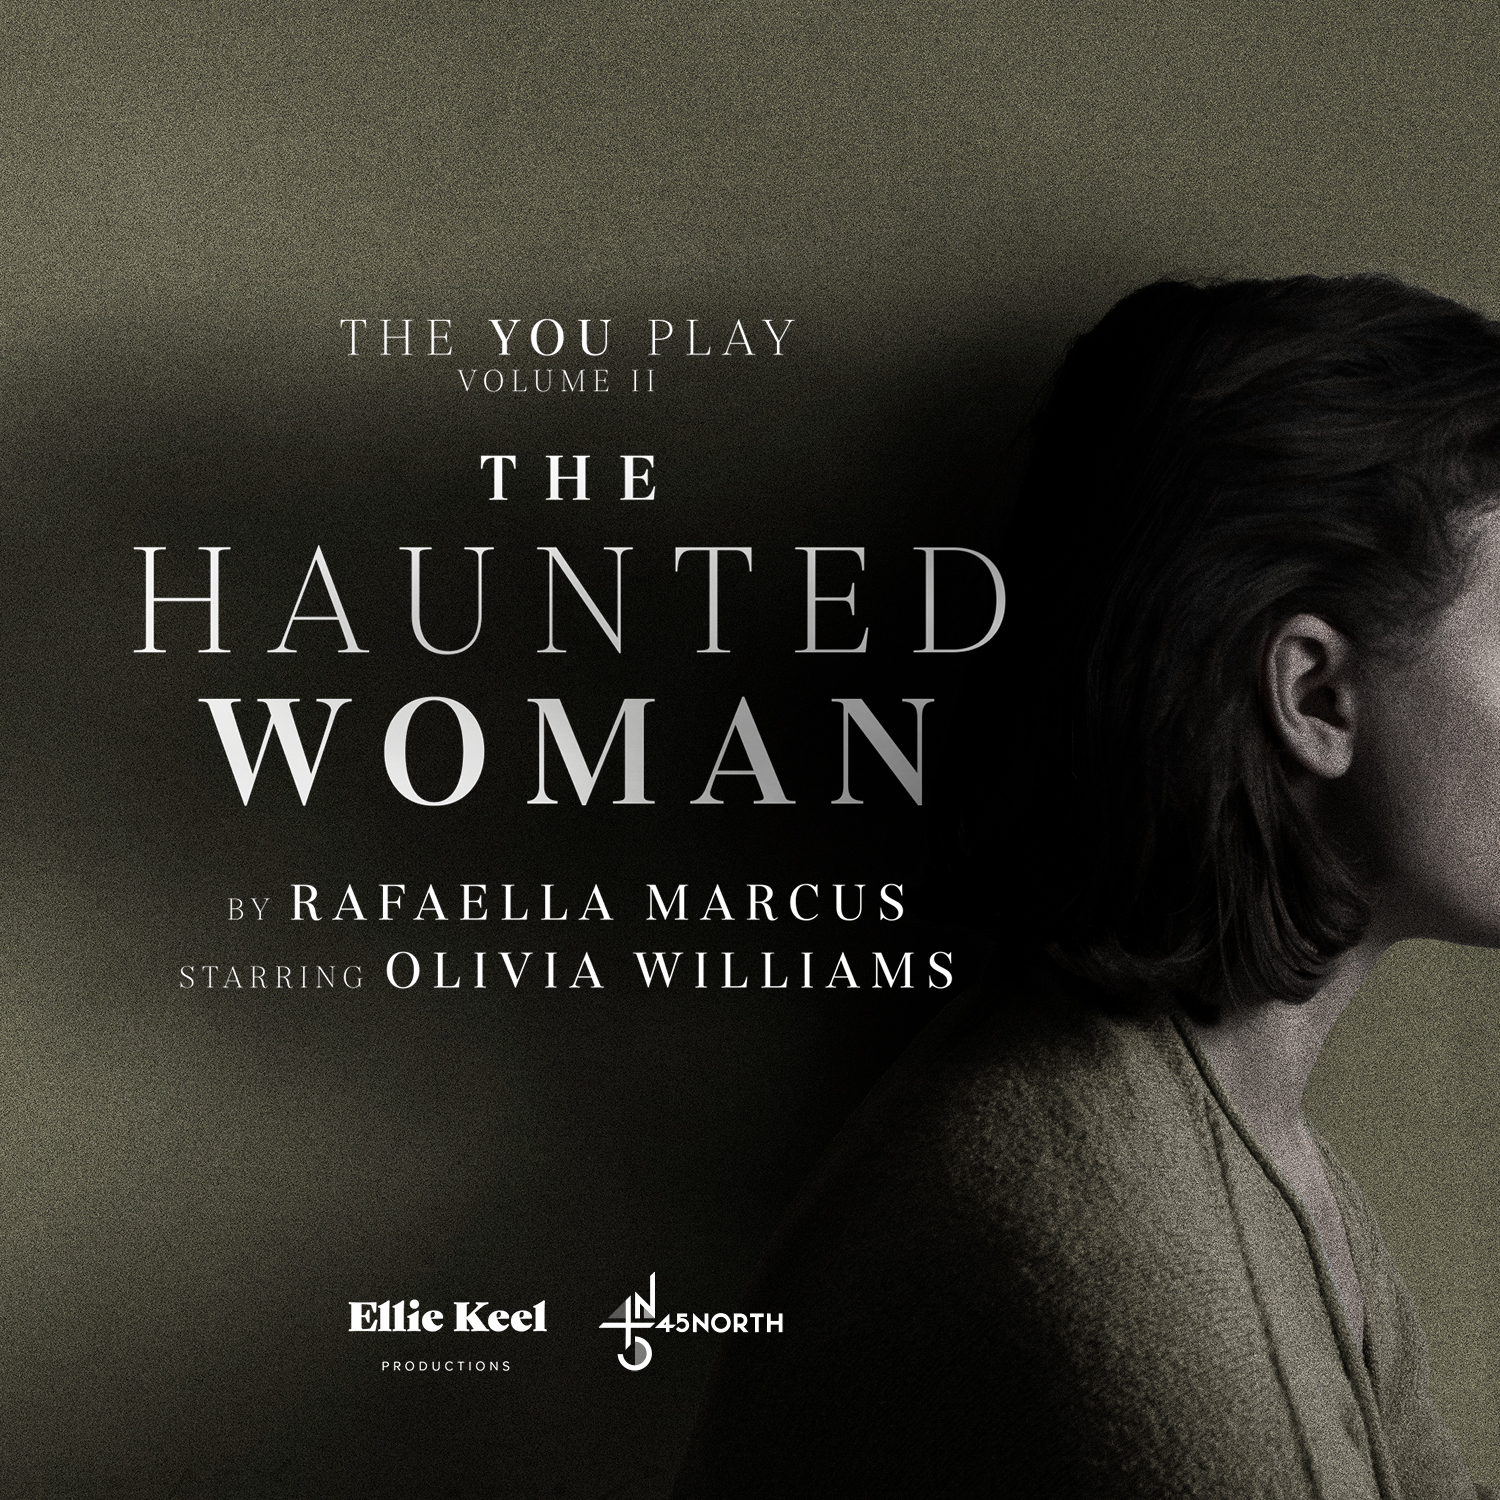 The You Play Volume Two: The Haunted Woman